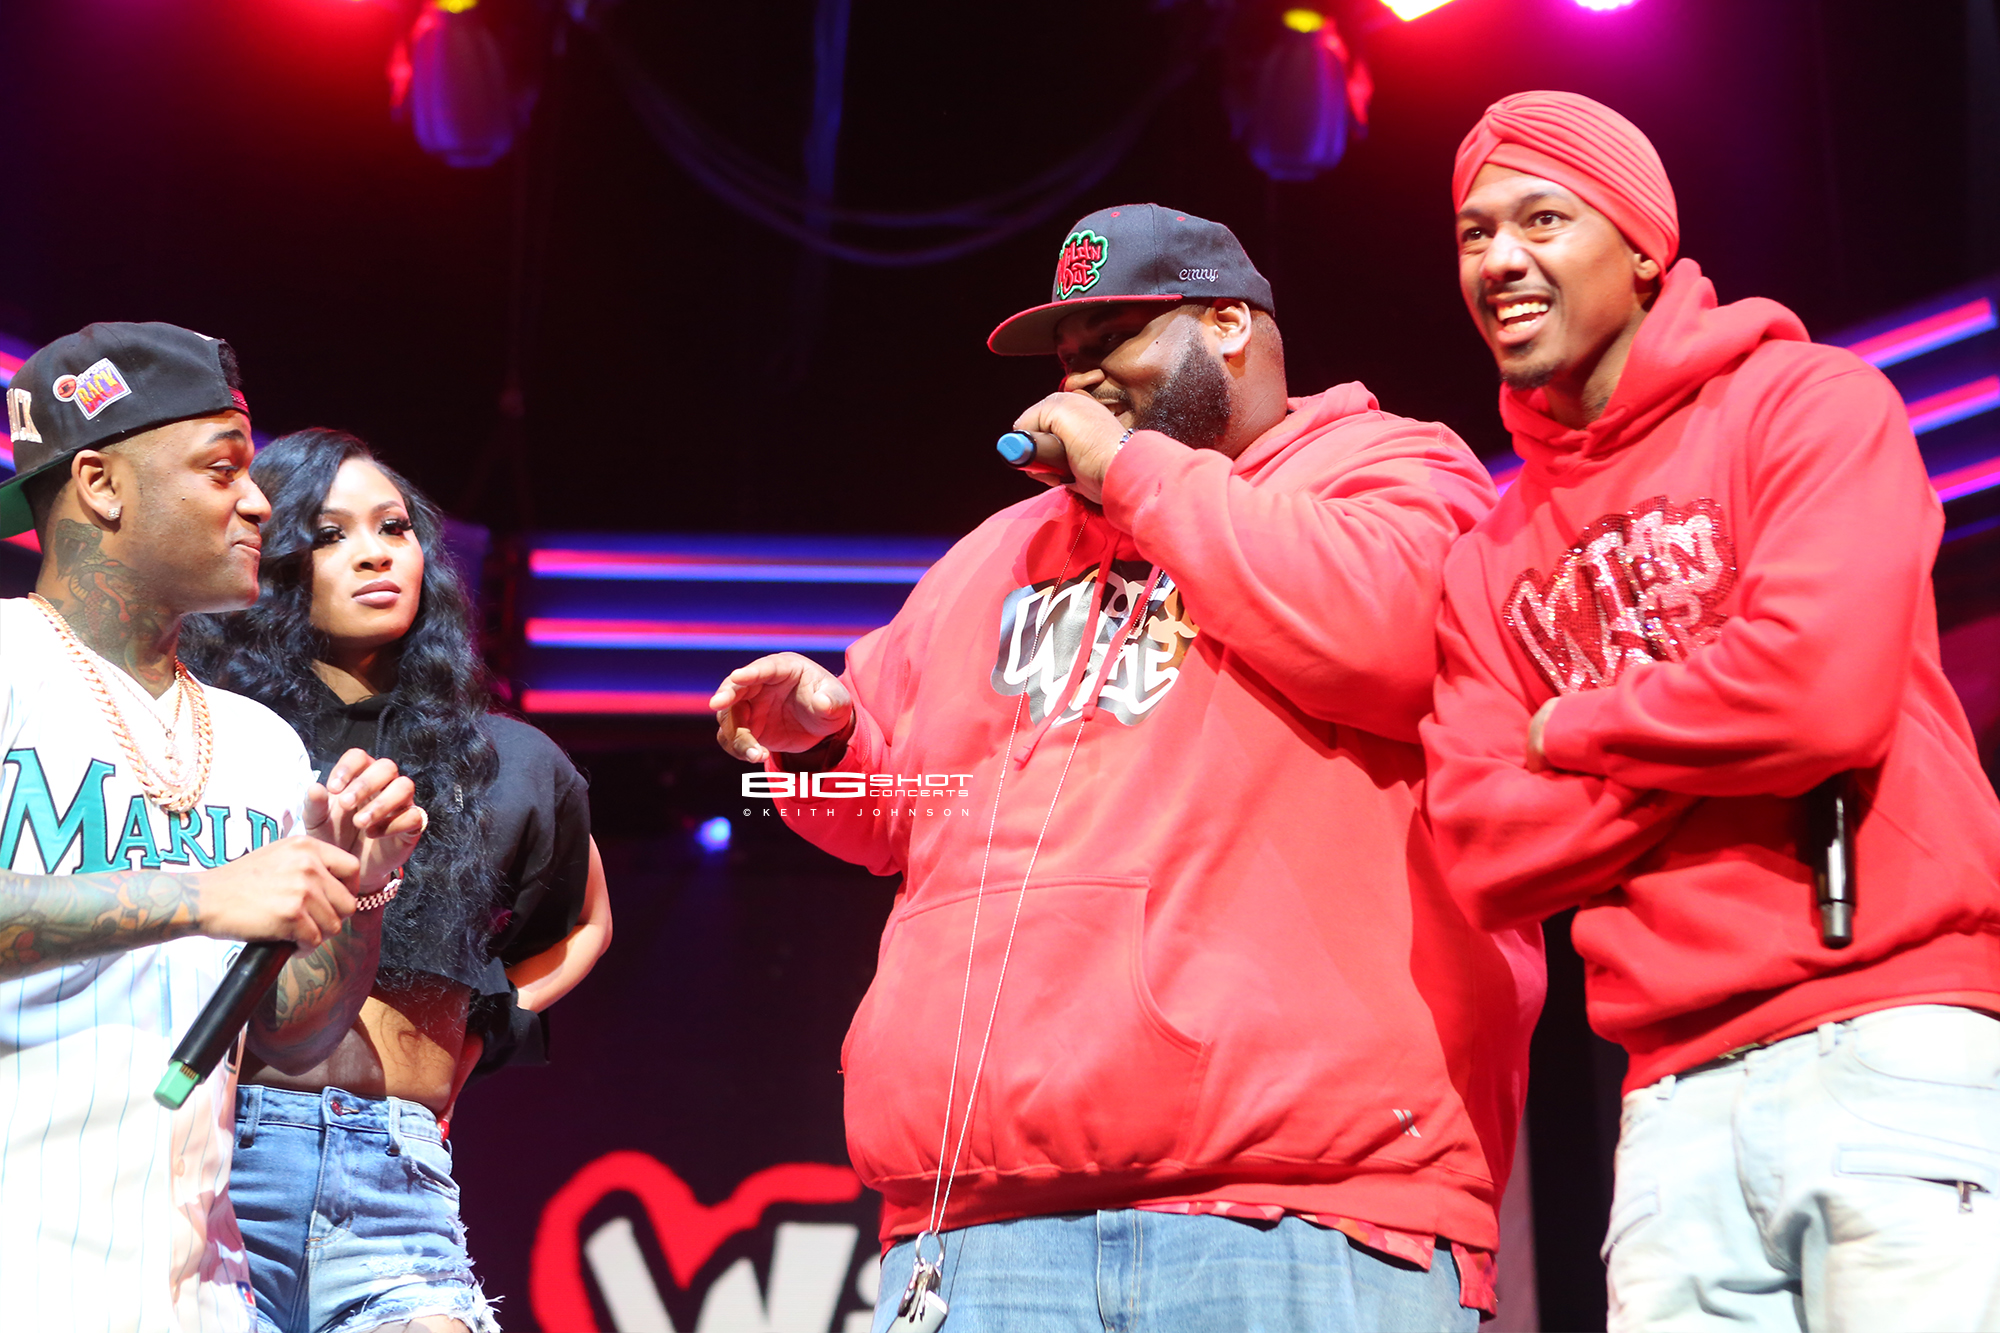 MTV Wild 'N Out at BB&T Center in Sunrise, Florida